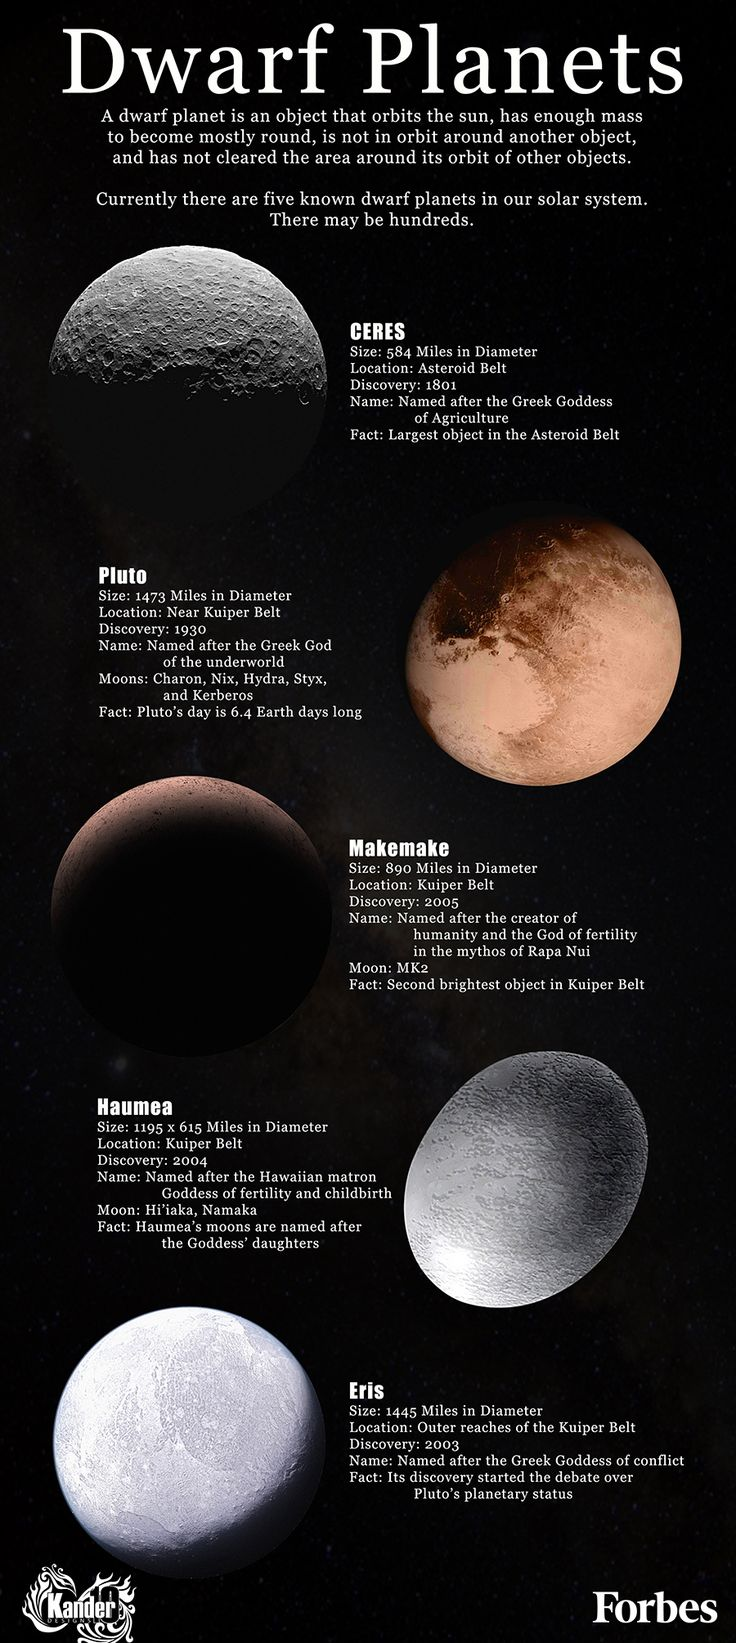 Who s hotter big bang theory cast comparison otakus amp geeks - Facts On The Five Known Dwarf Planets Infographic